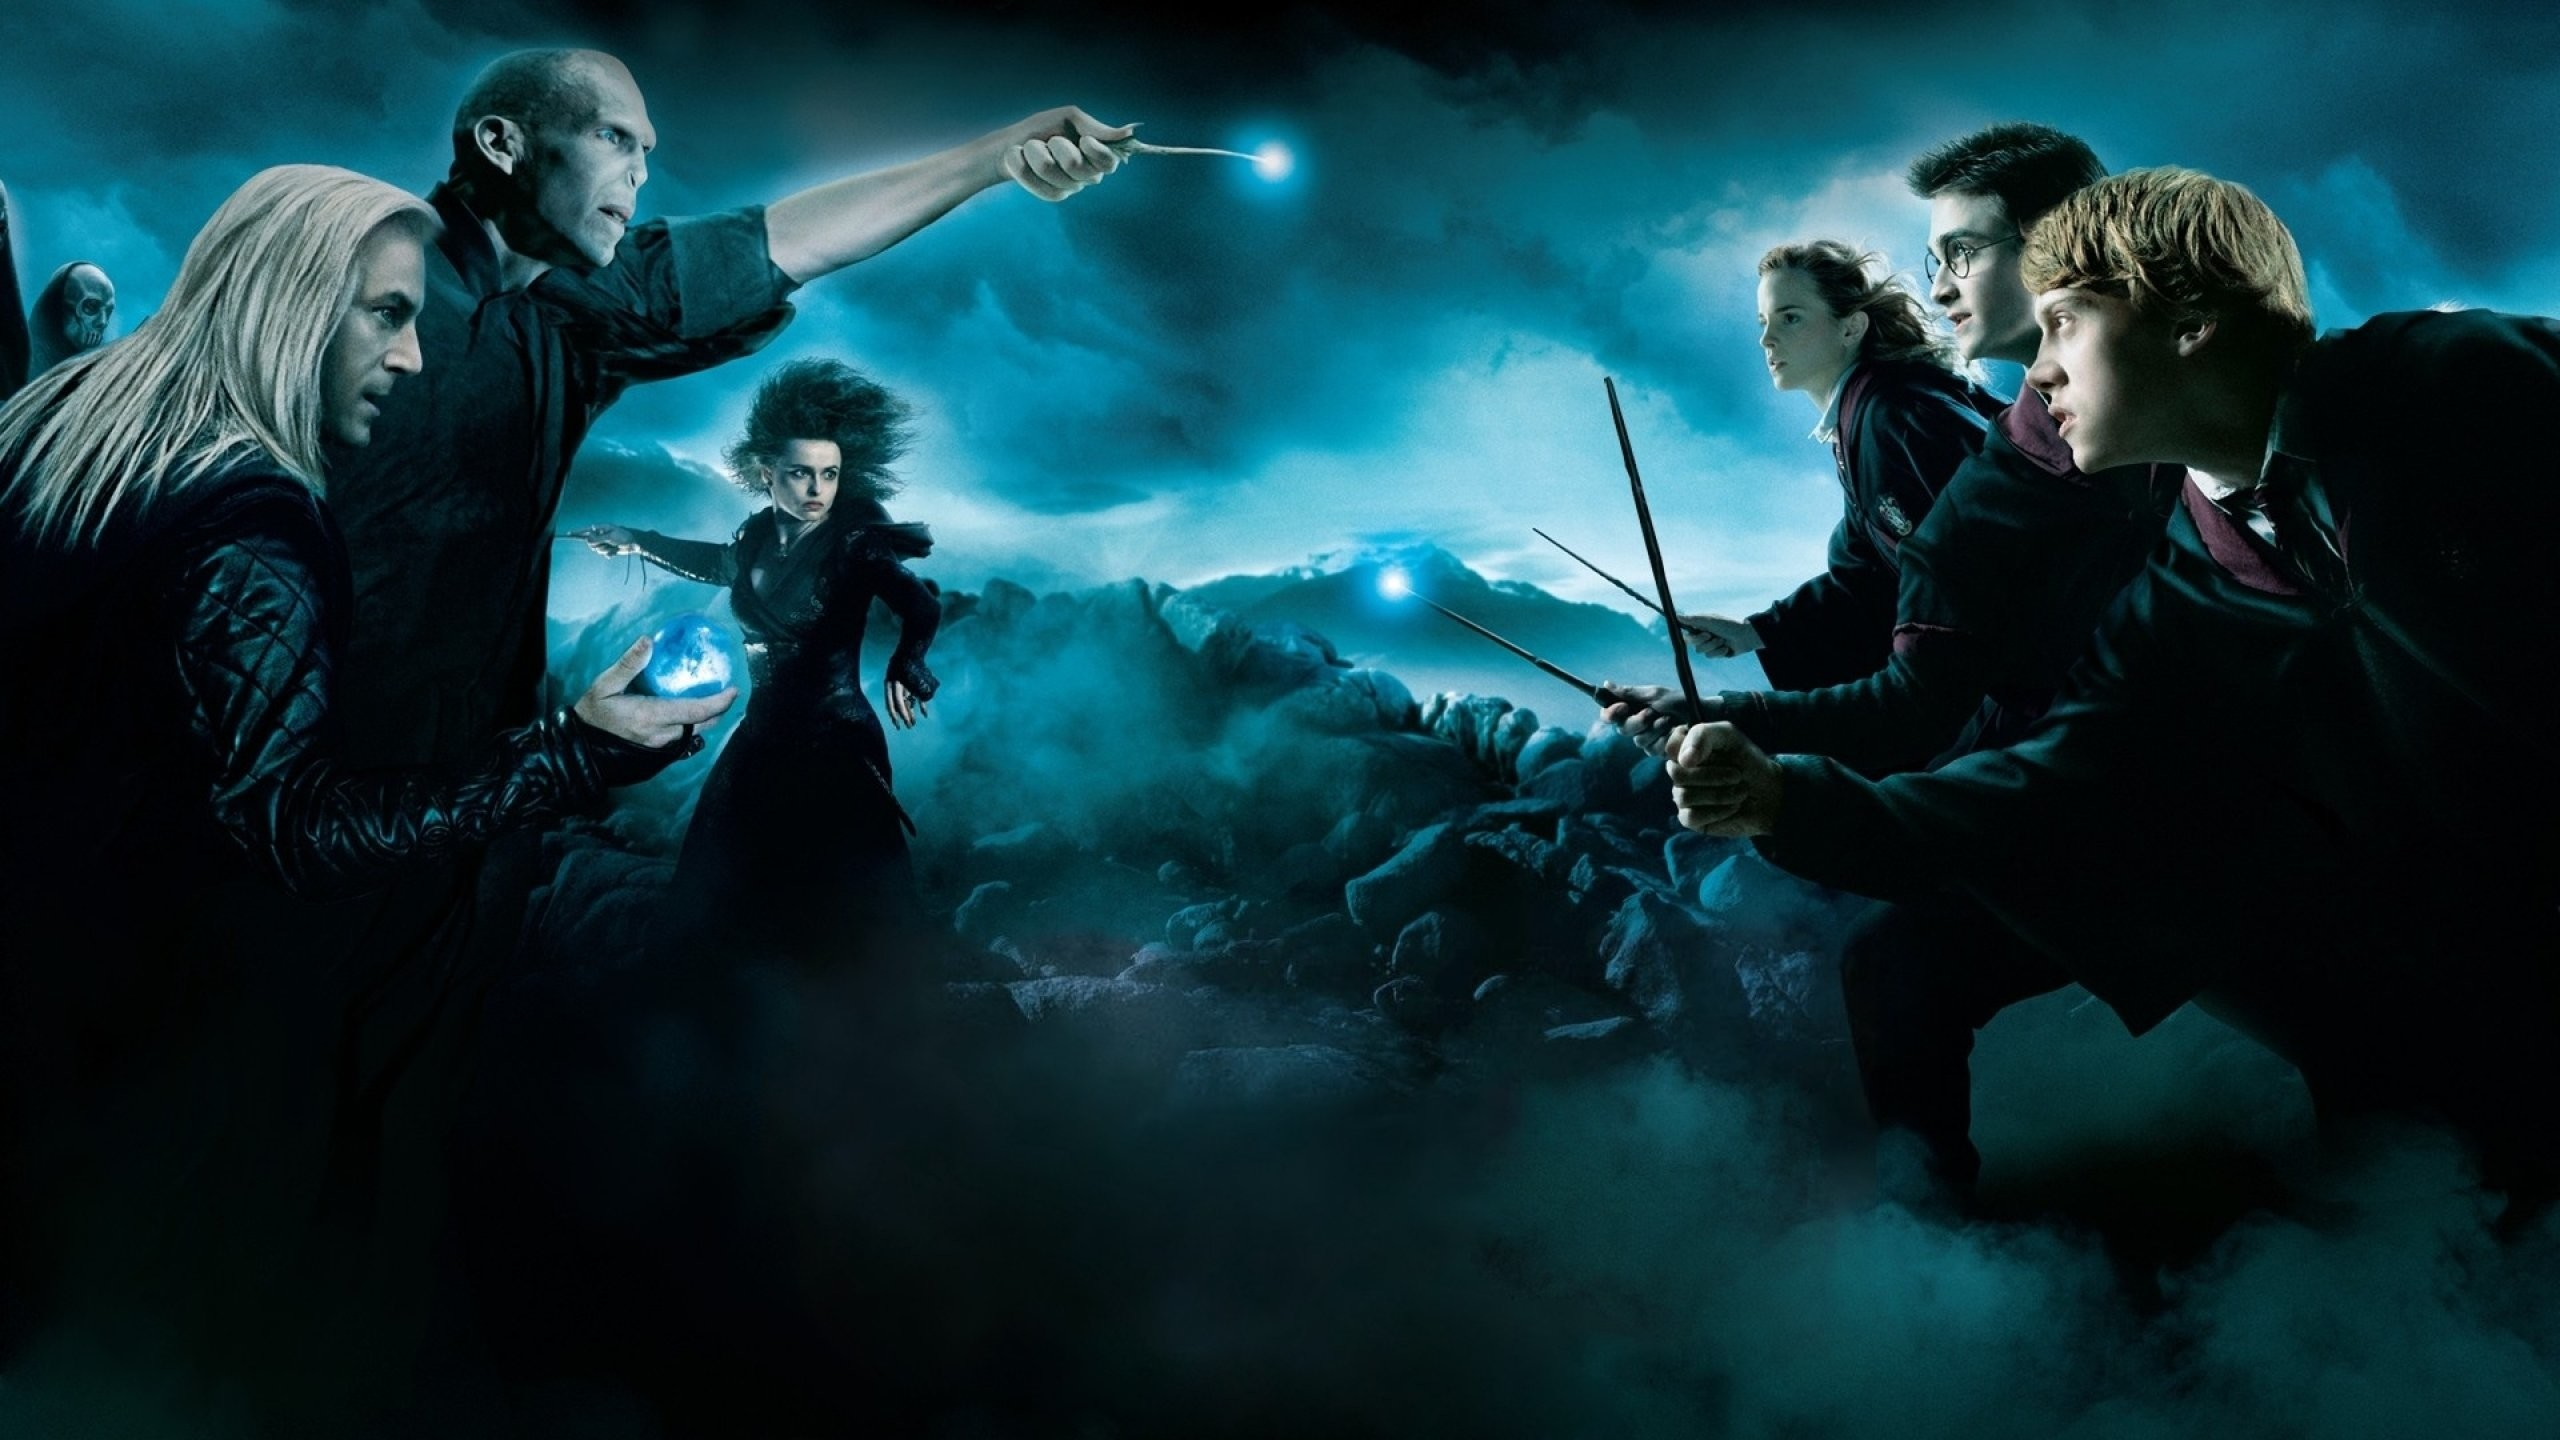 Great Wallpaper Harry Potter Black - 717637-best-sirius-black-wallpapers-2560x1440-hd-for-mobile  Pictures_502093.jpg